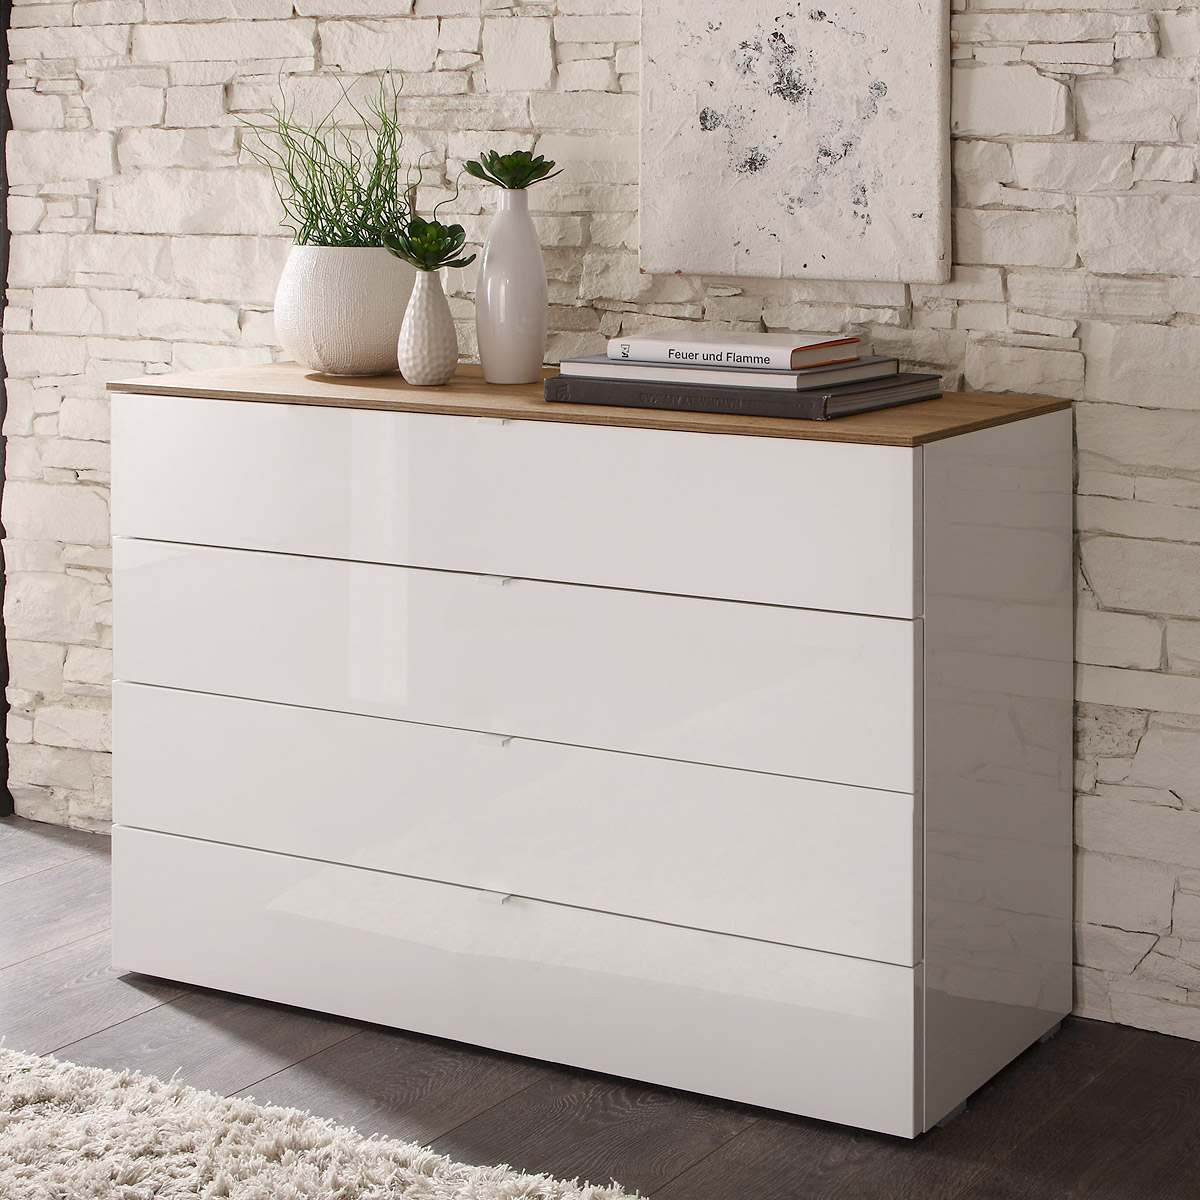 kommode tambura sideboard wei lack und eiche natur mit schubk sten ebay. Black Bedroom Furniture Sets. Home Design Ideas